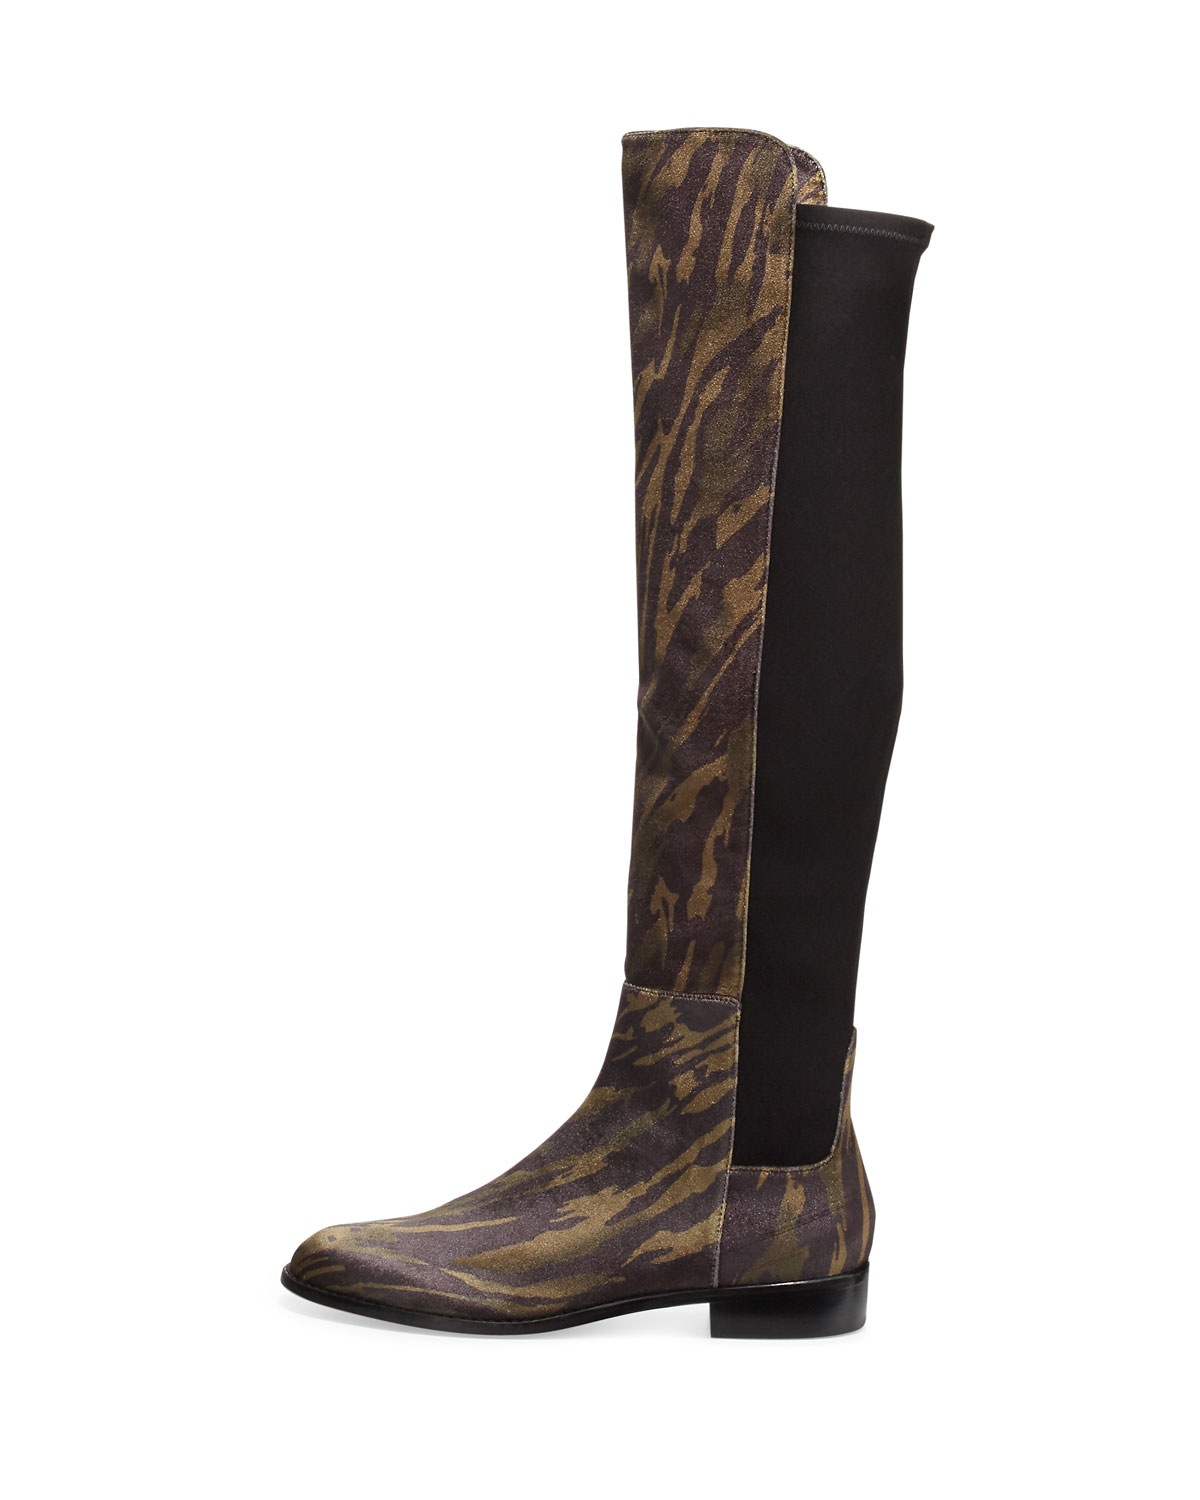 Stuart weitzman Mainstay Tiger-print Over-the-knee Boot in Black ...